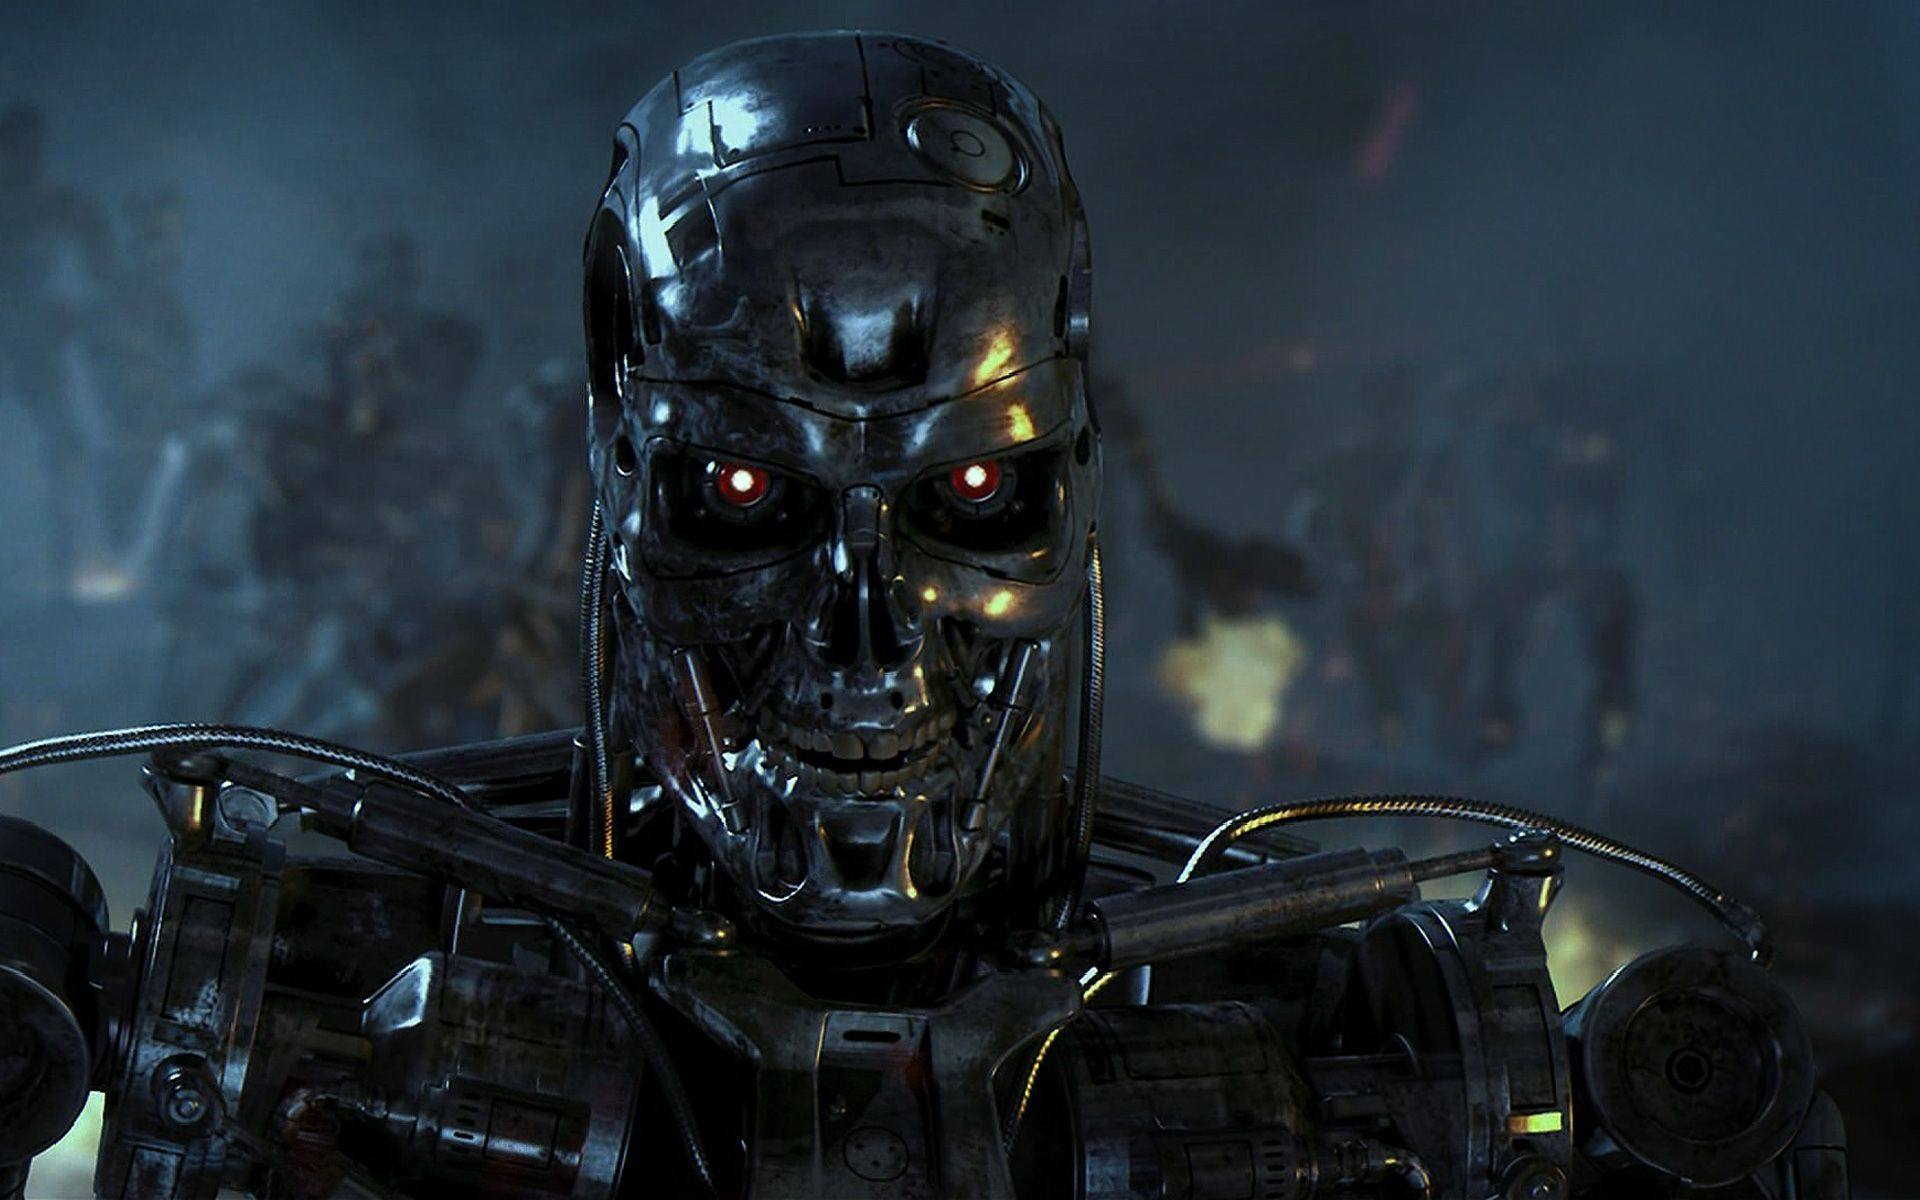 terminator-movie-terminator-5-genisys-motion-poster-revealed-first-trailer-coming-on-thursday